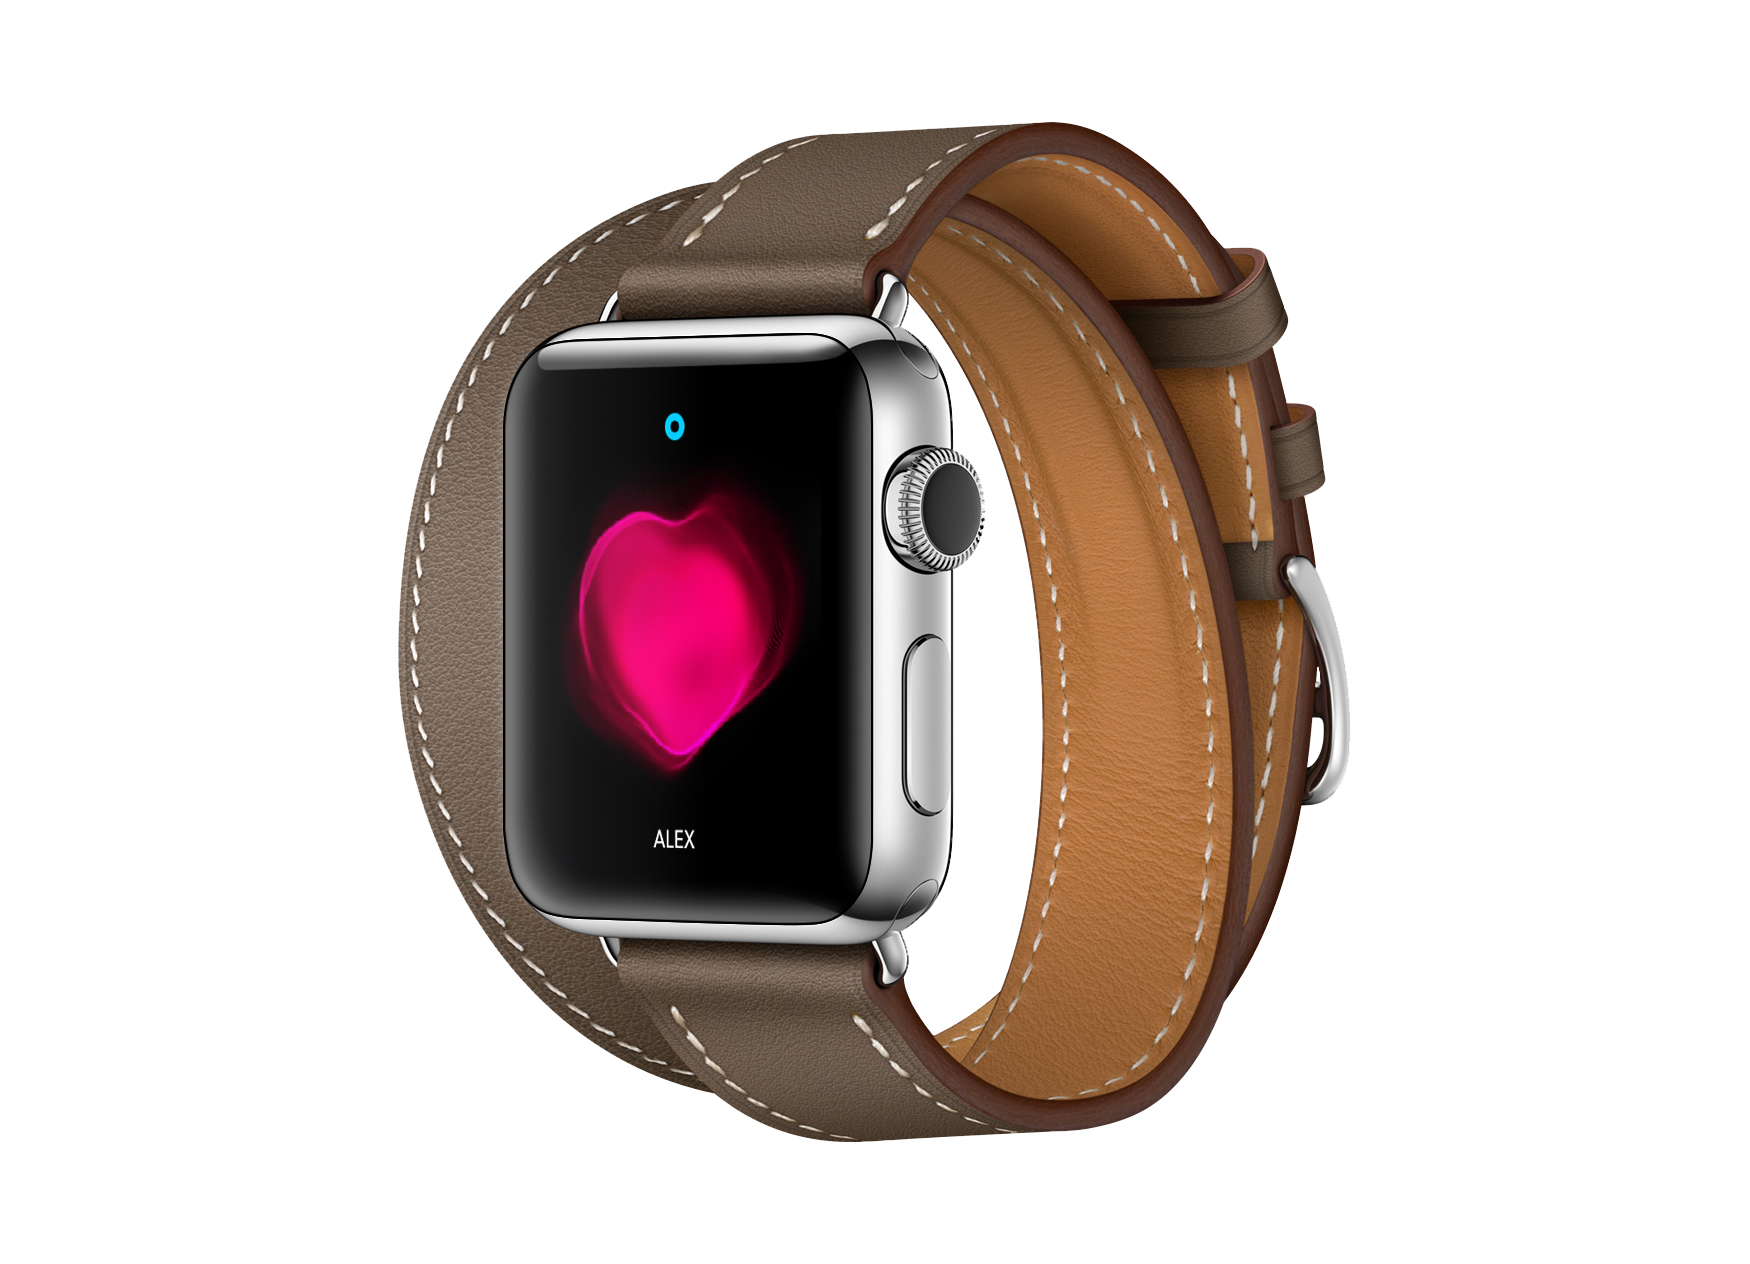 Apple Watch Leather Band Mockup PSD